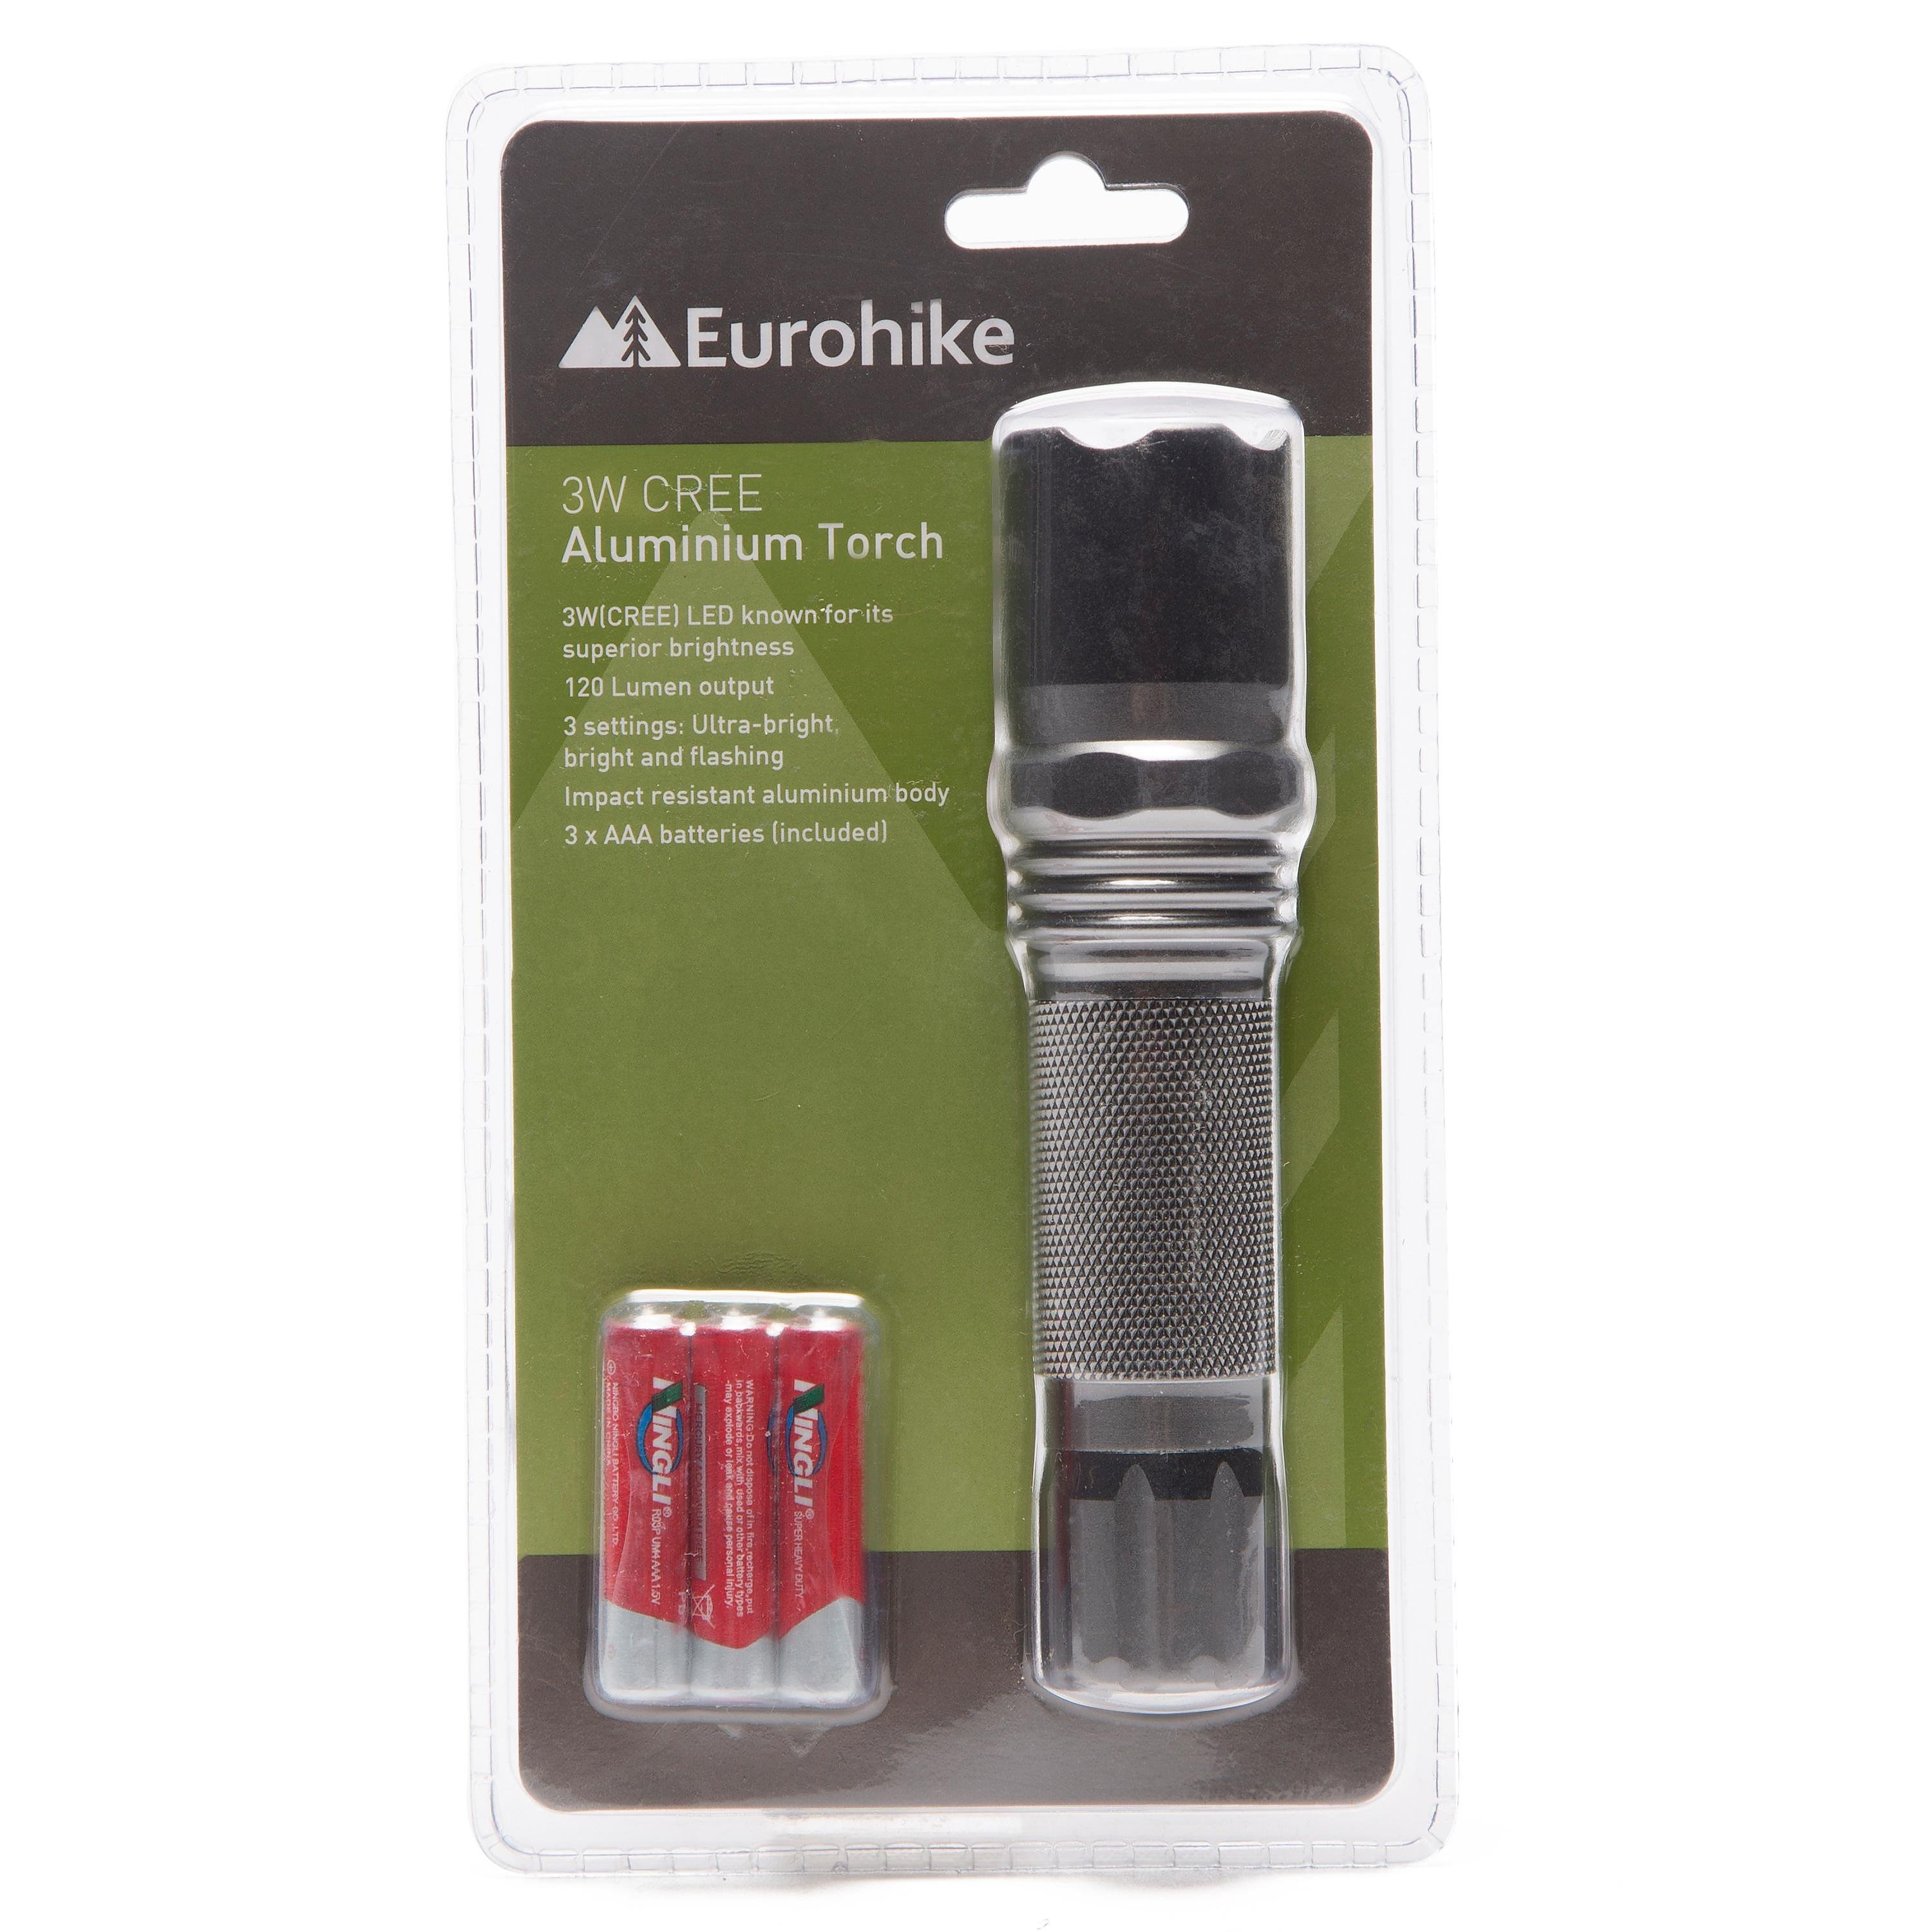 EUROHIKE EH 3W CREE TORCH